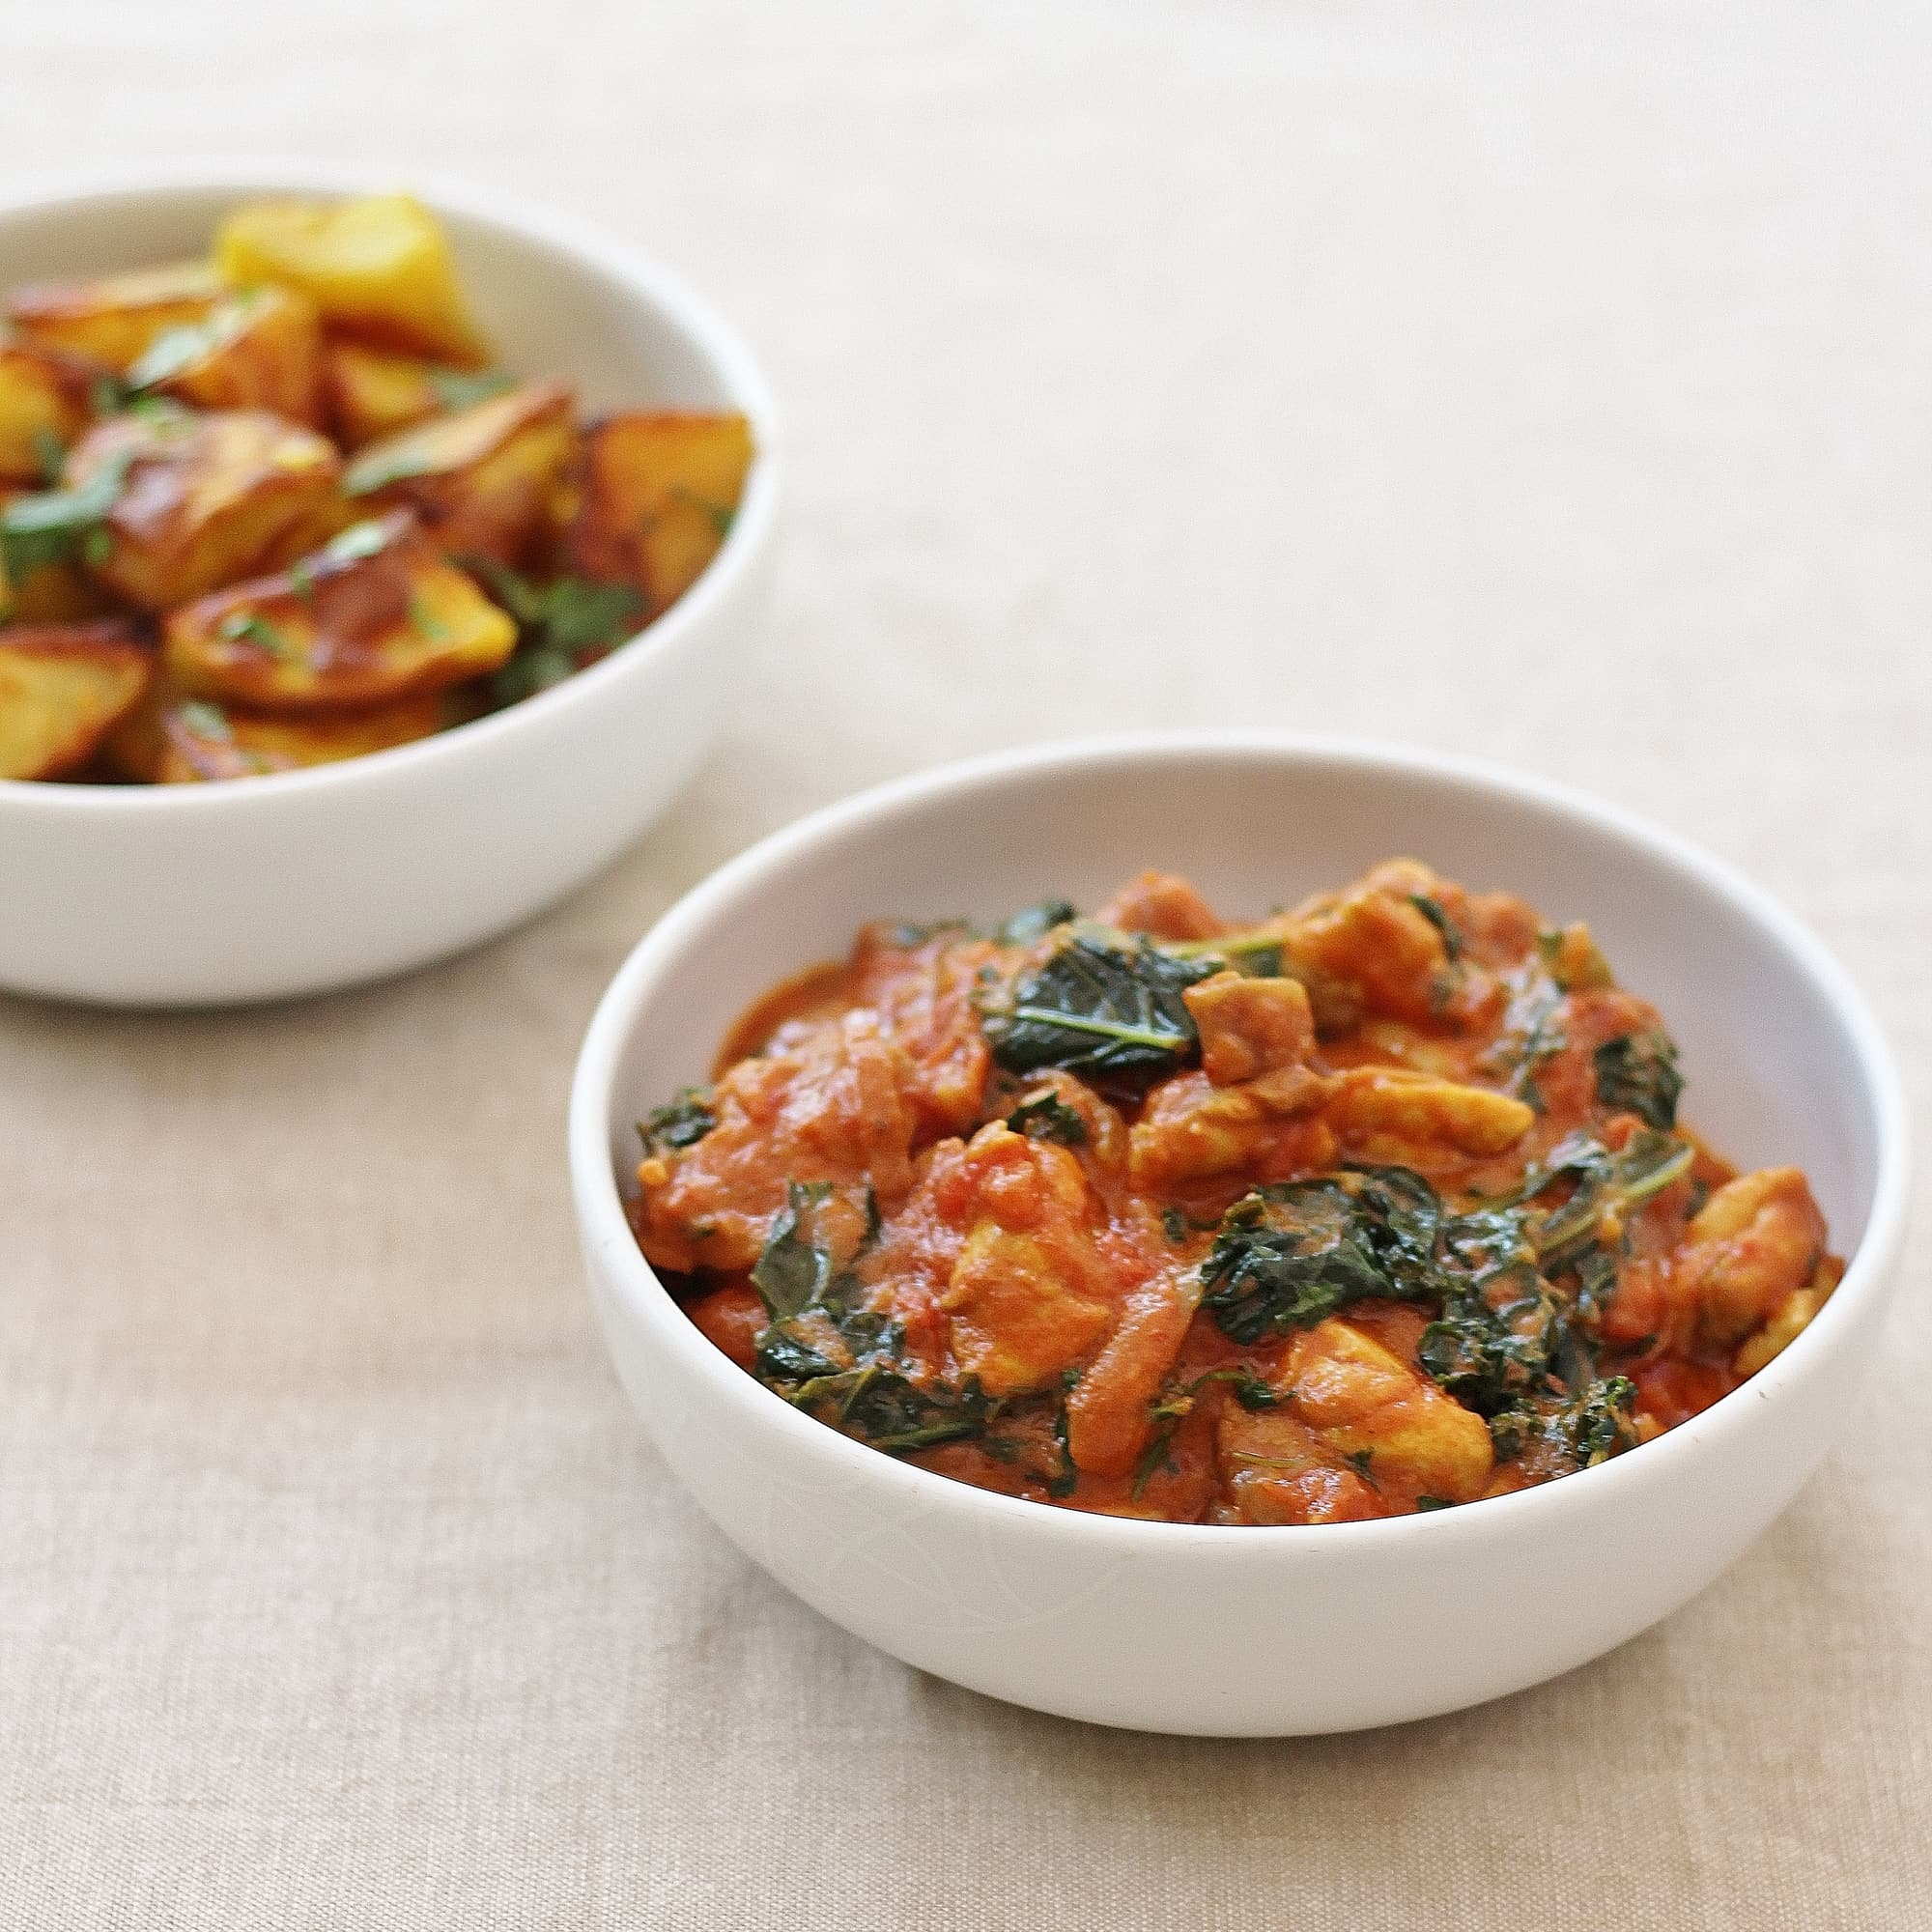 What is the sirtfood diet and does it really work part 3 easy chicken and kale curry with bombay potatoes from the sirtfood diet forumfinder Choice Image